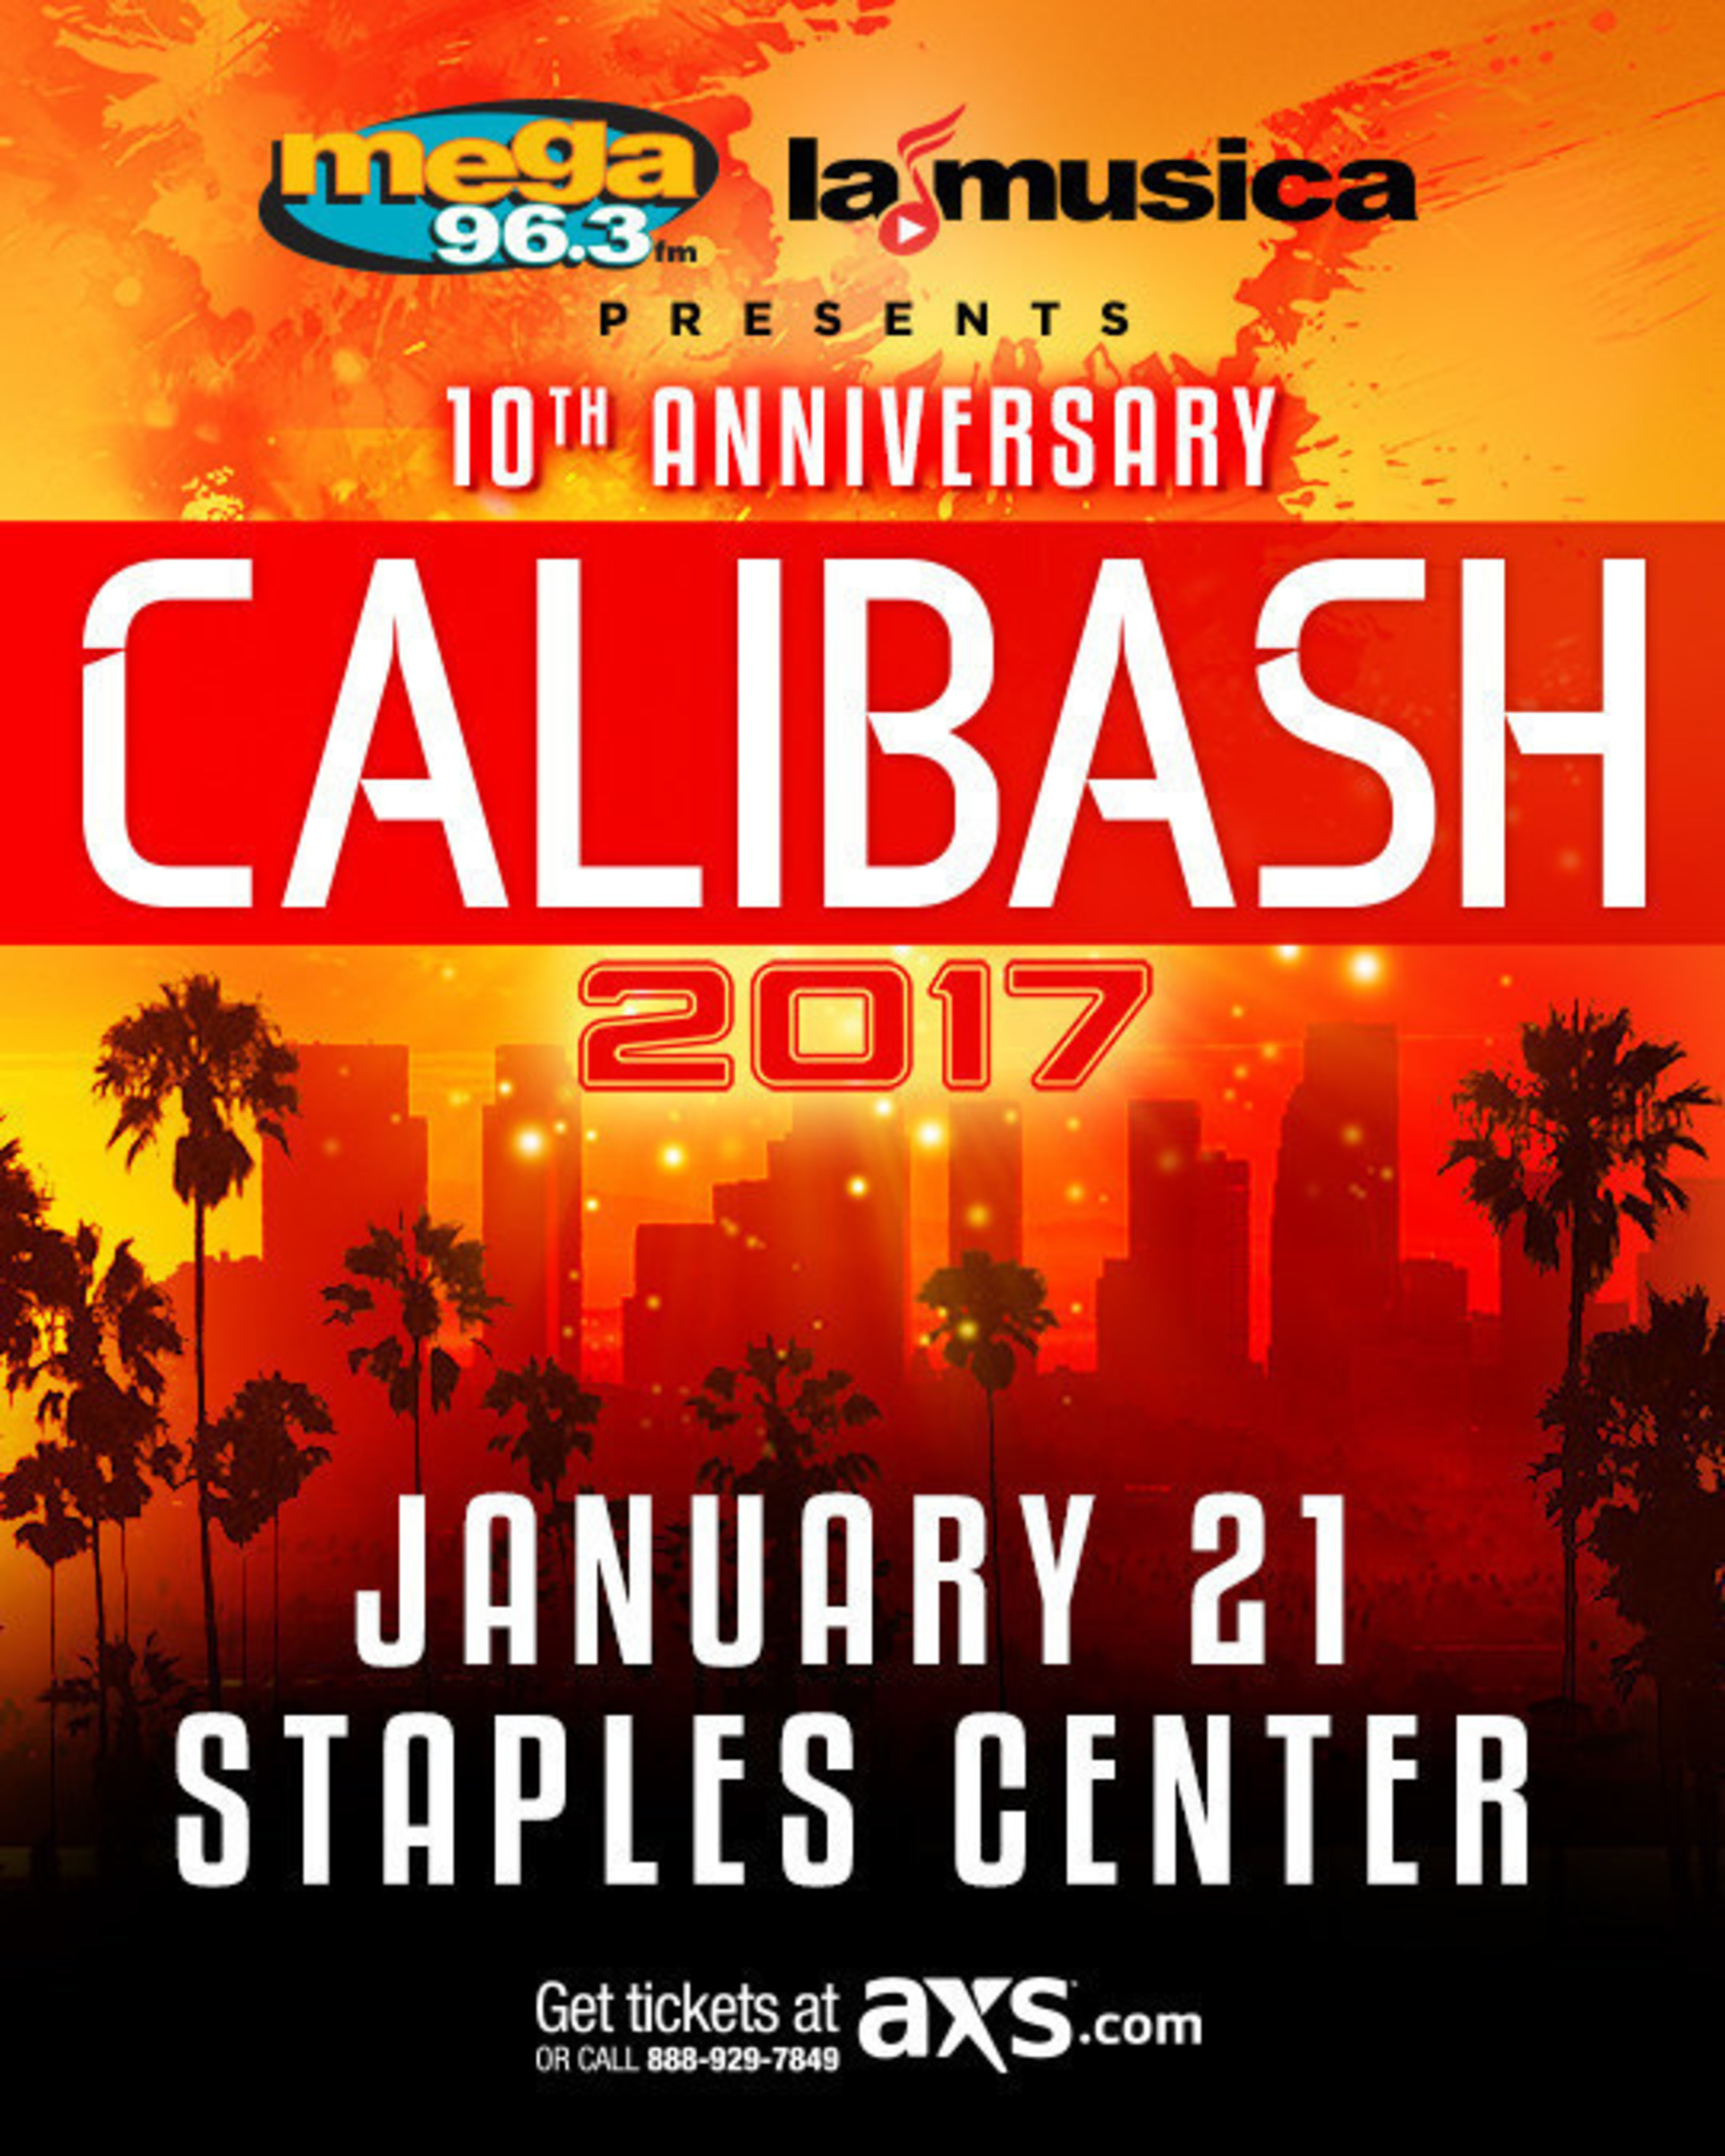 Don Omar, Nicky Jam, Prince Royce, Gente de Zona and more top artists to perform at the special 10th anniversary edition of Calibash - the leading latin urban music concert in the world